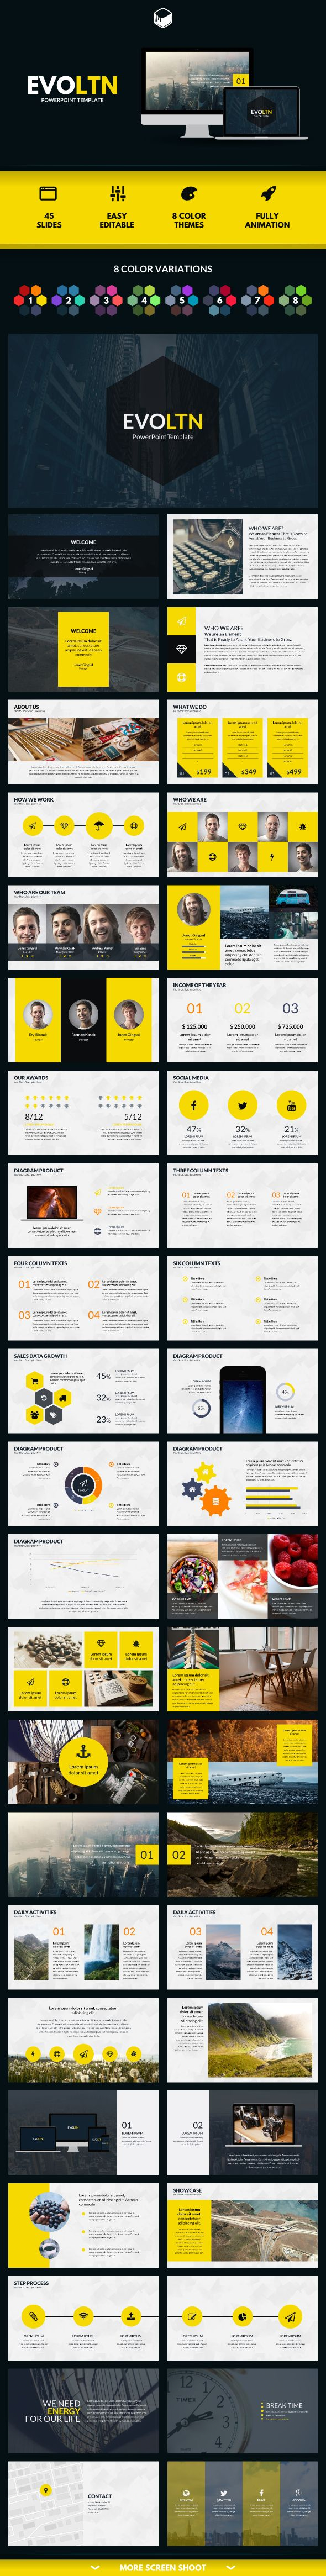 PowerPoint Template #design Download: http://graphicriver.net/item/evoltn-powerpoint-template/11823375?ref=ksioks